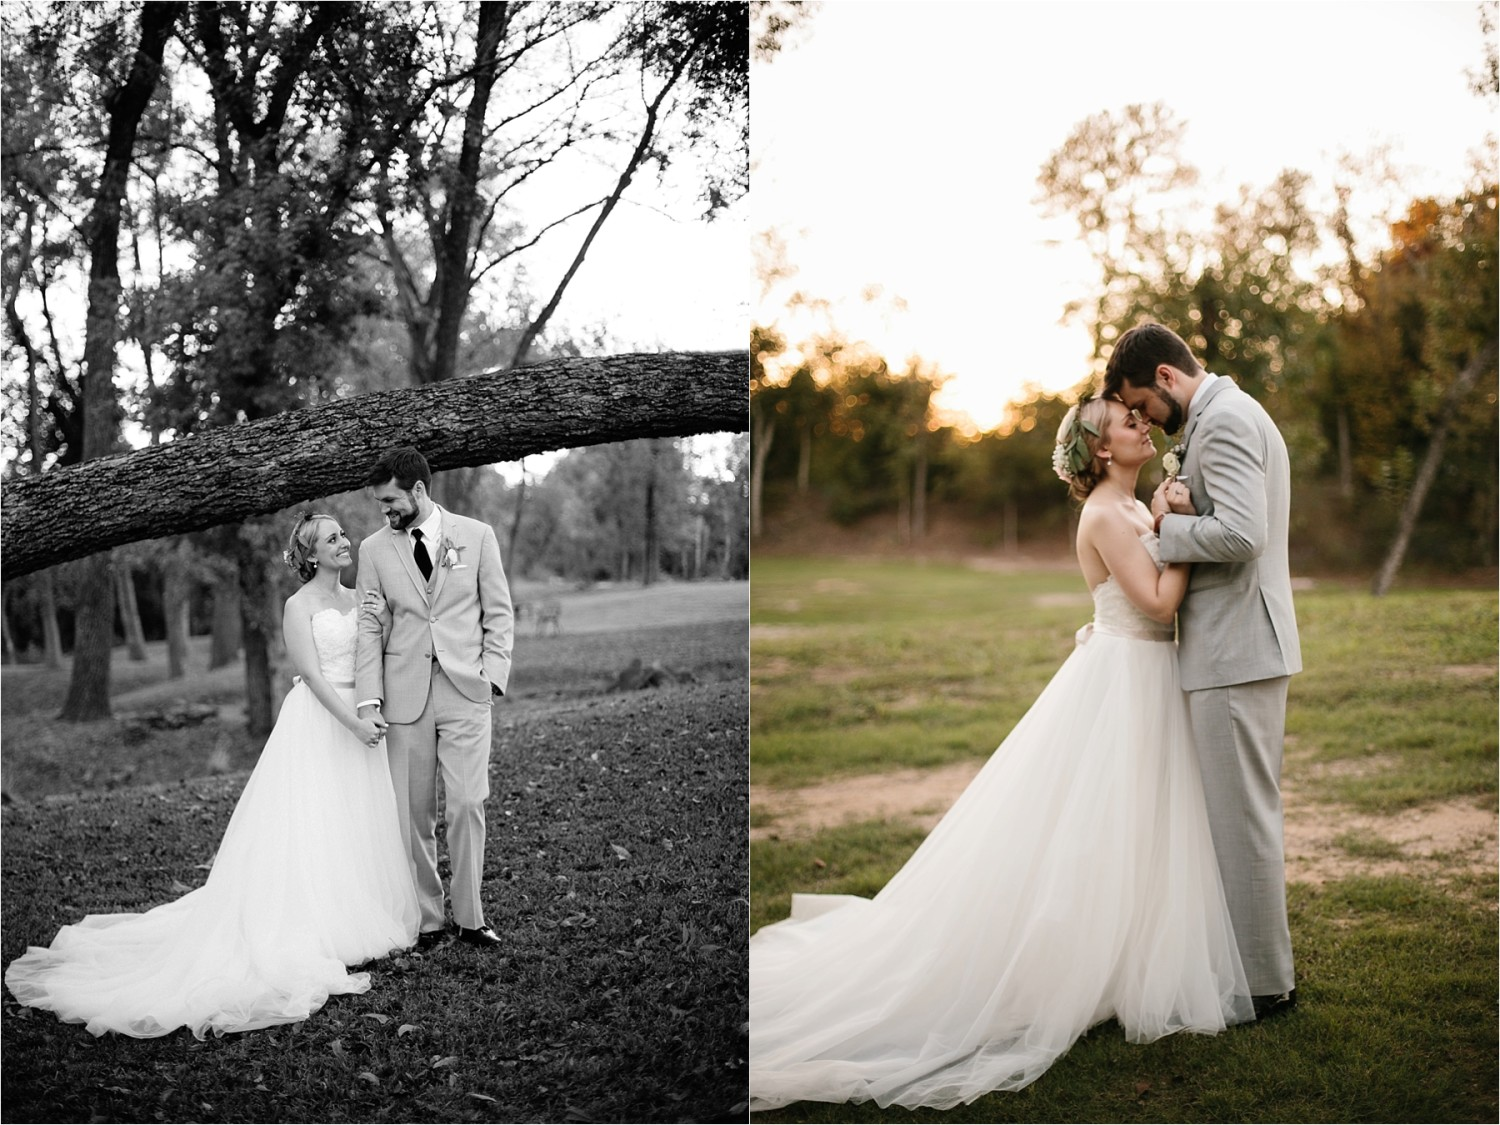 brad-lara-__-a-grey-and-blush-pink-intimate-wedding-at-hidden-waters-event-center-in-waxahachie-tx-by-north-texas-wedding-photographer-rachel-meagan-photography-_-072